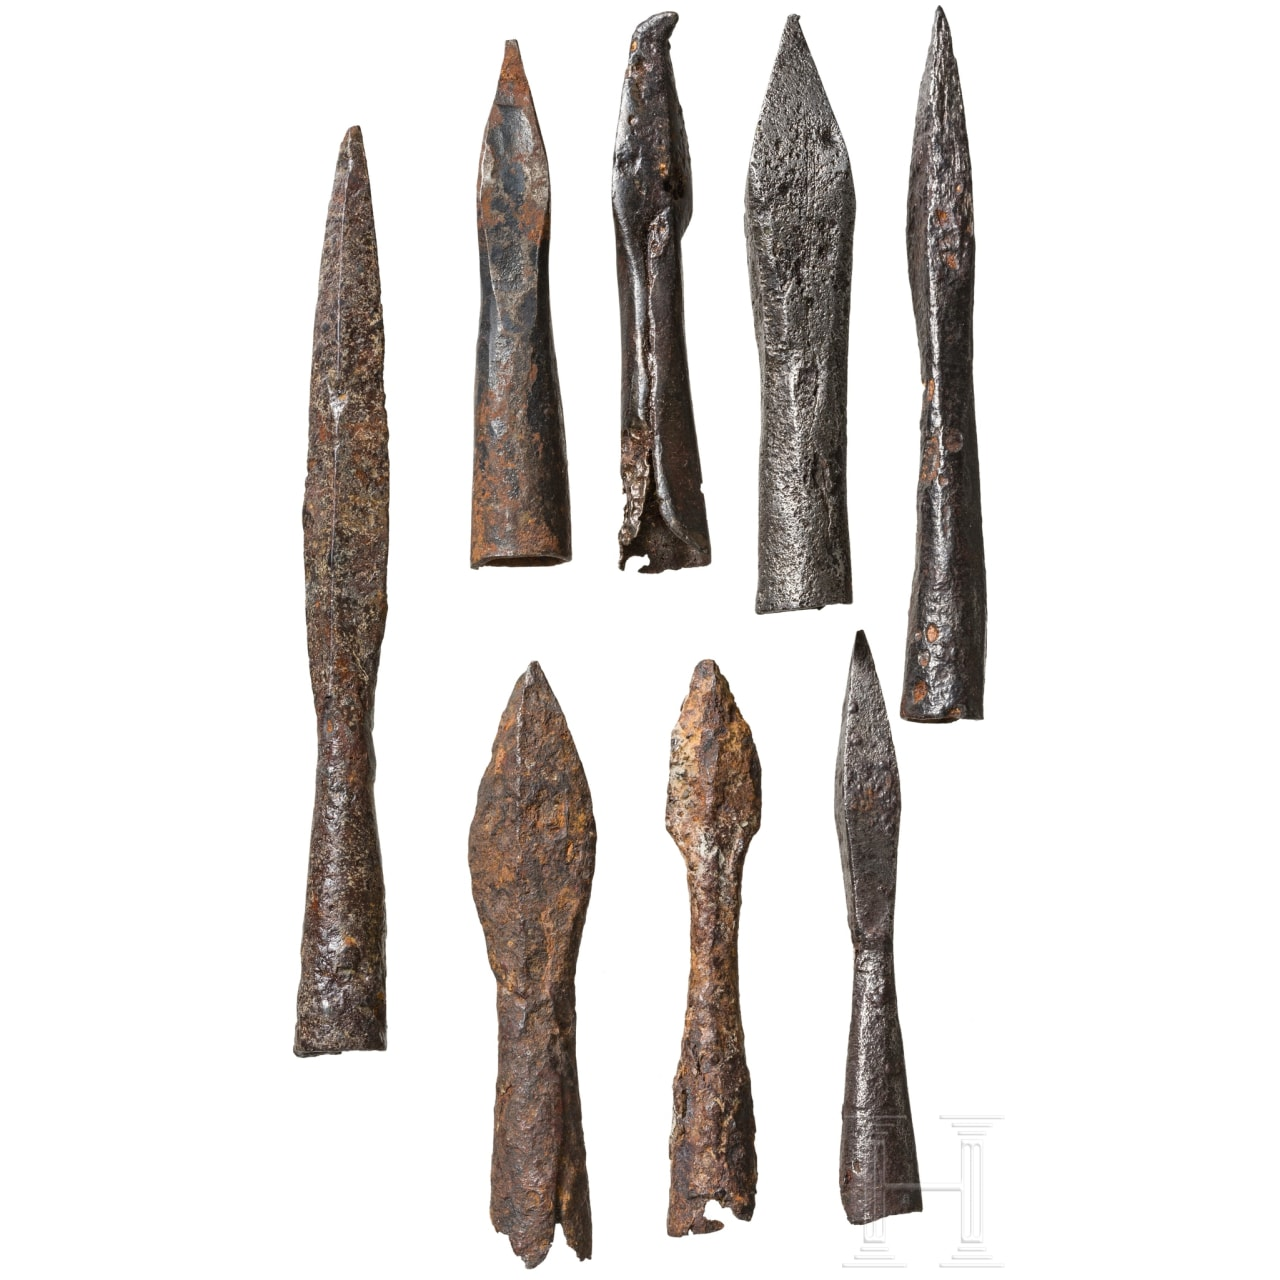 A collection of German bolts and arrowheads, 14th-16th century